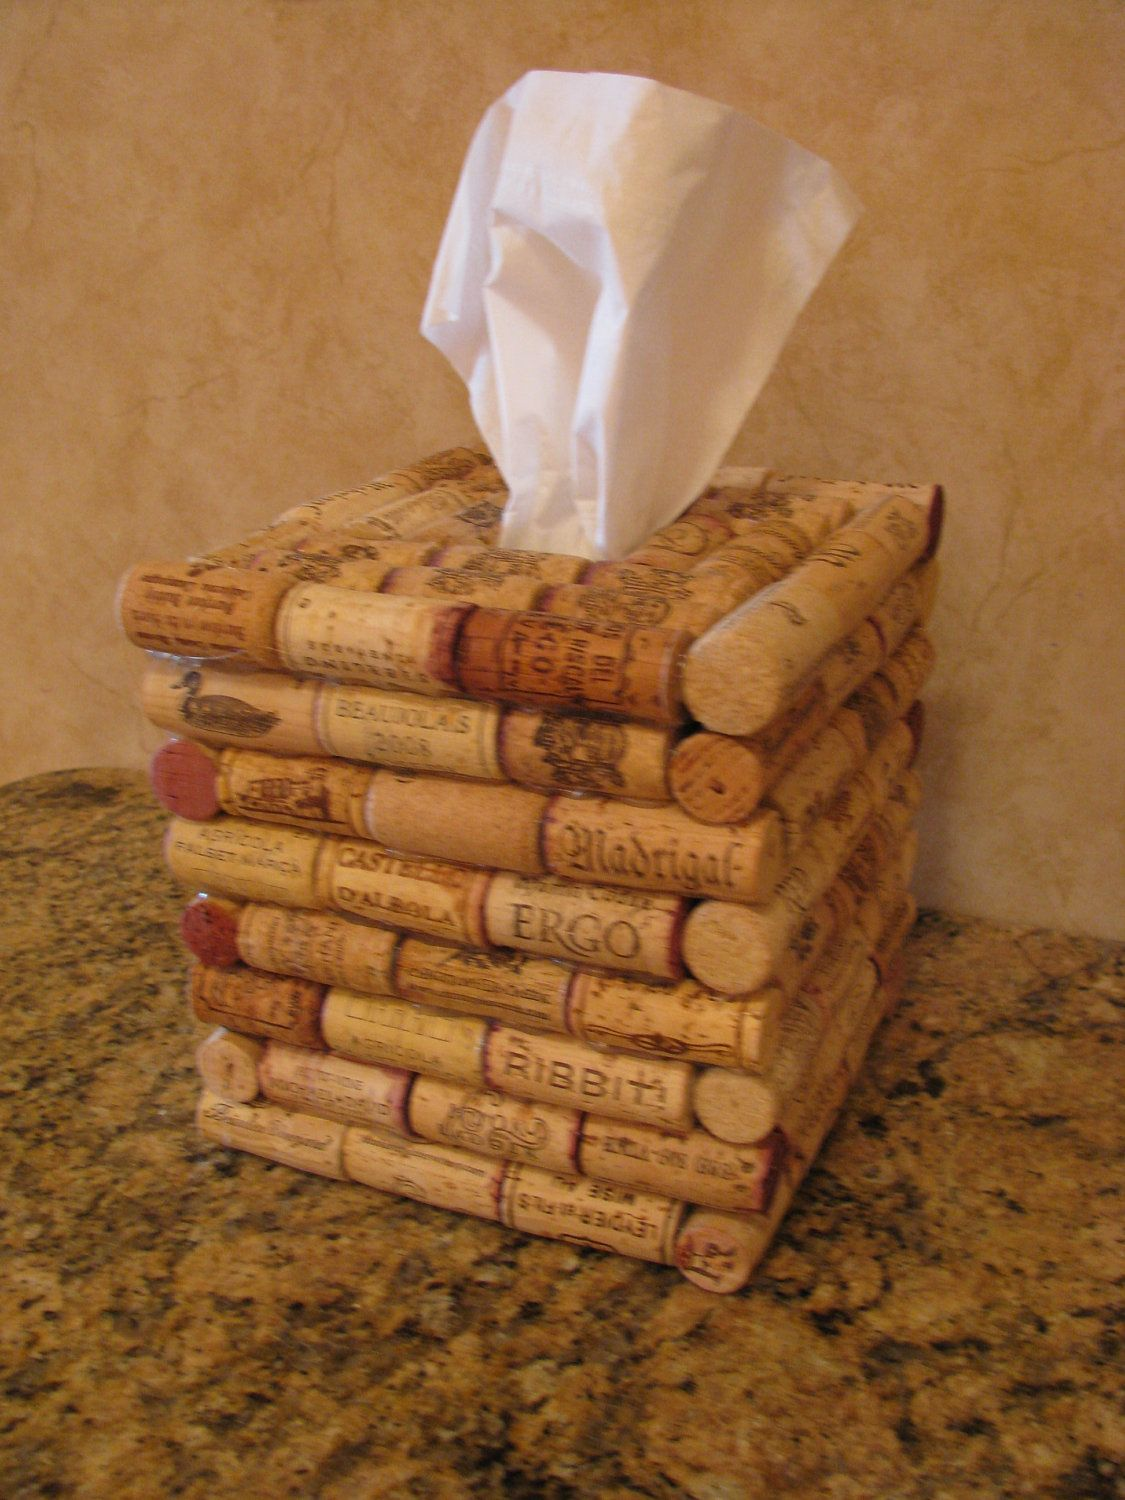 Amazing Wine Cork Tissue Holder Who Will Be Trying This Out Manualidades Con Corchos Corchos De Botellas De Vino Artesania Corchos De Vino